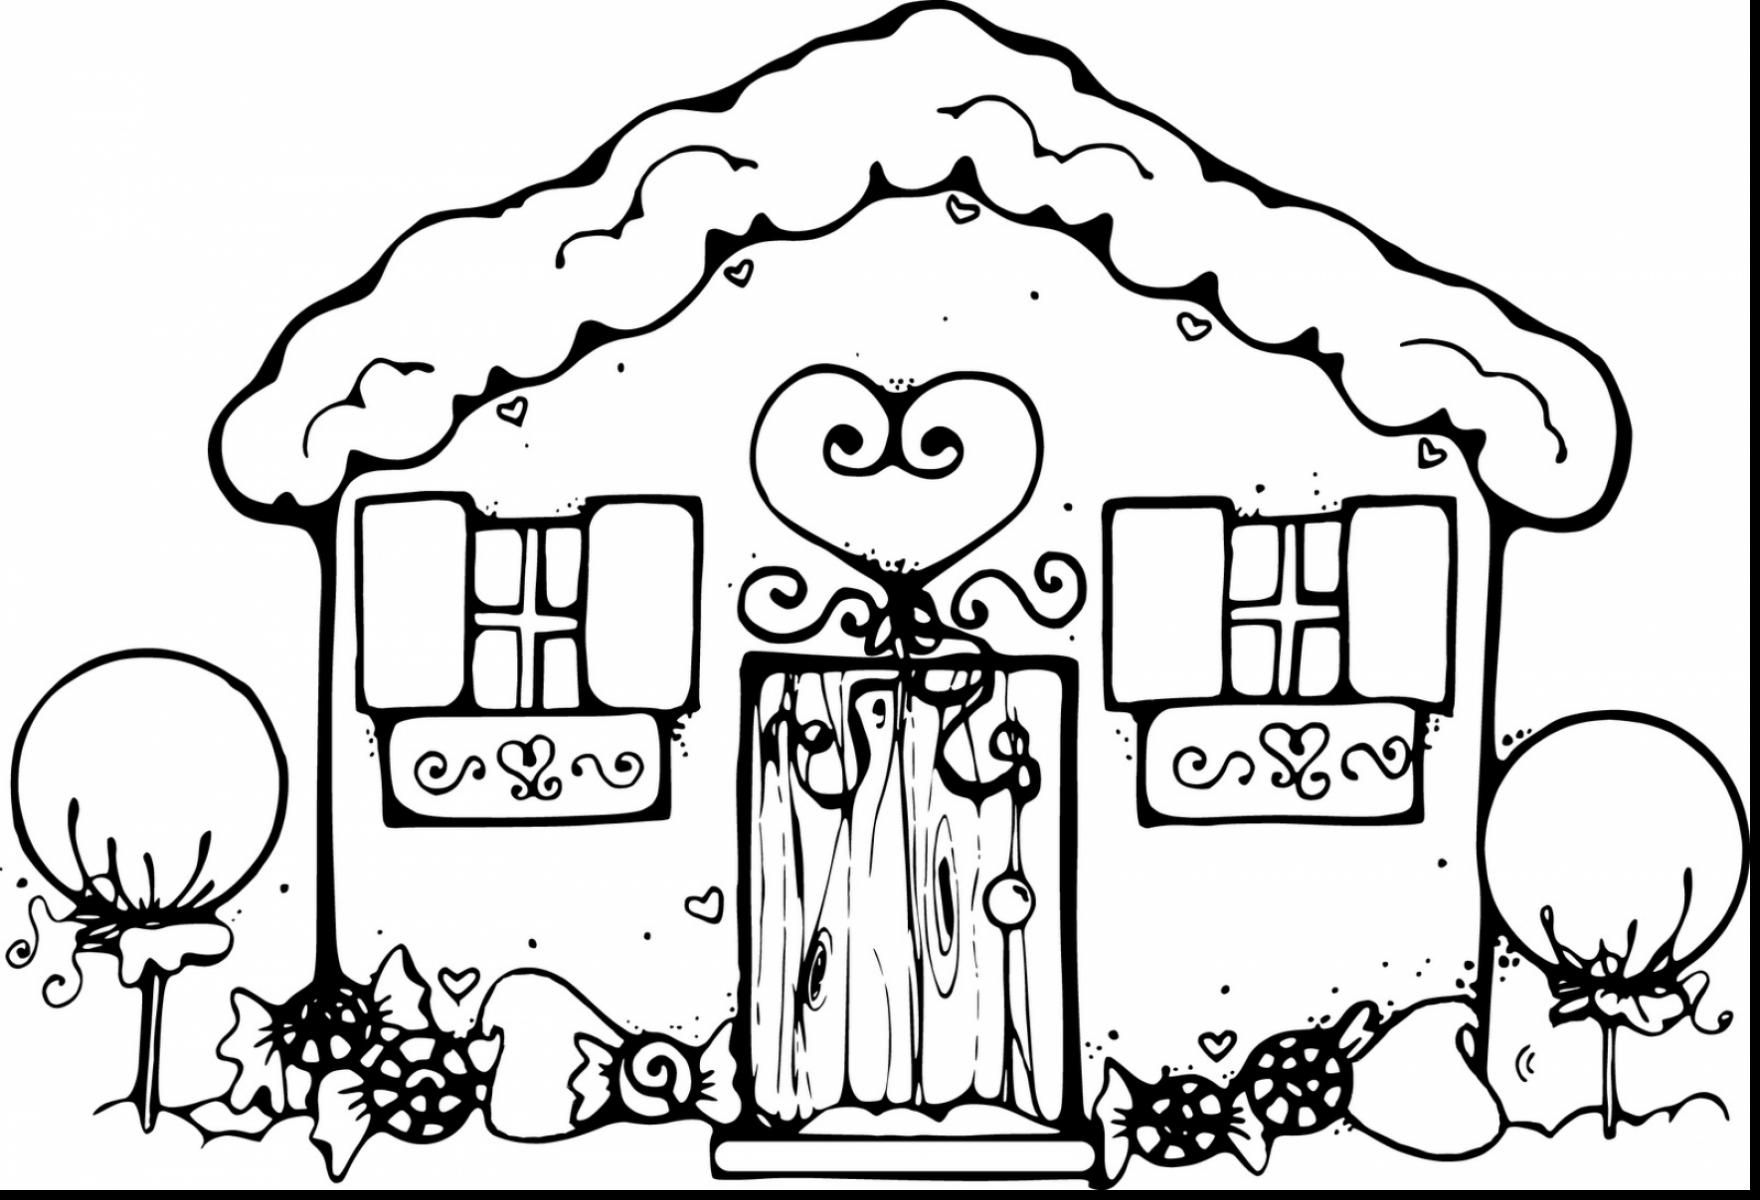 Black And White House Drawing at GetDrawings.com | Free for personal ...